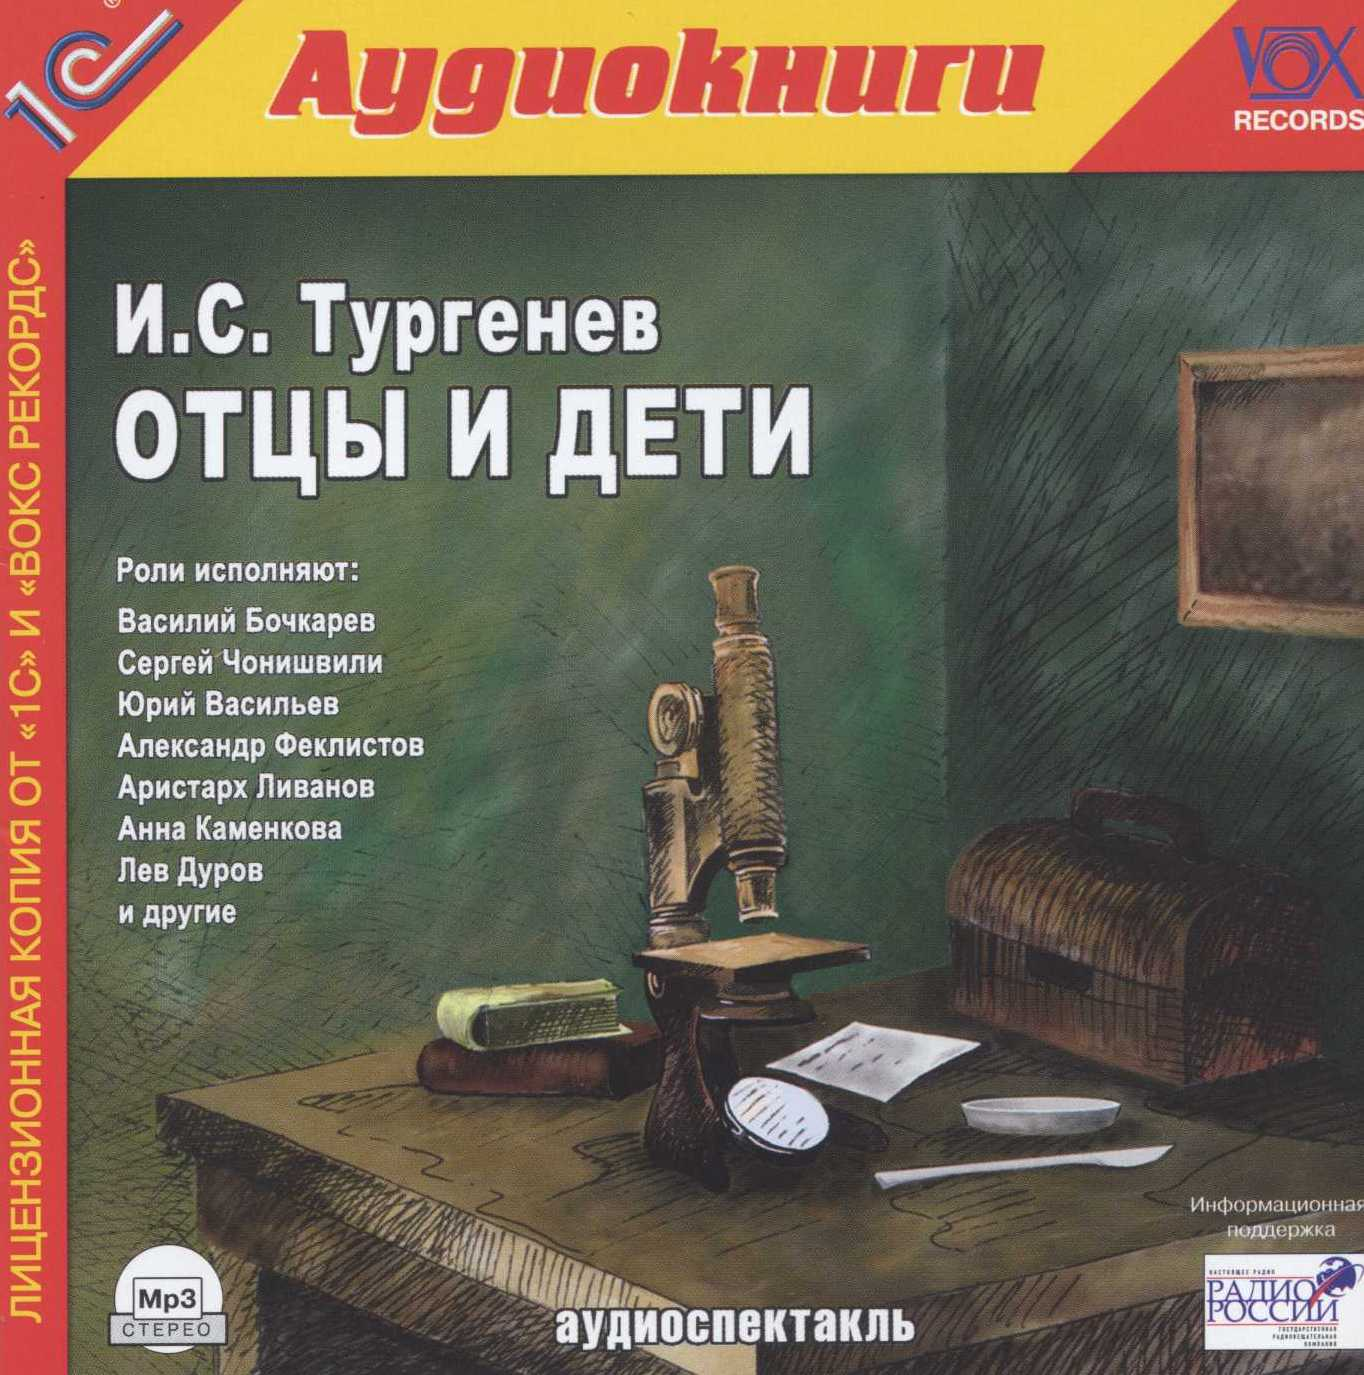 critical essays on ivan turgenev Ivan sergeevich turgenev is a coryphaeus of russian prose, author of long and  short stories  the name of the critic, whom turgenev listed among the «central.